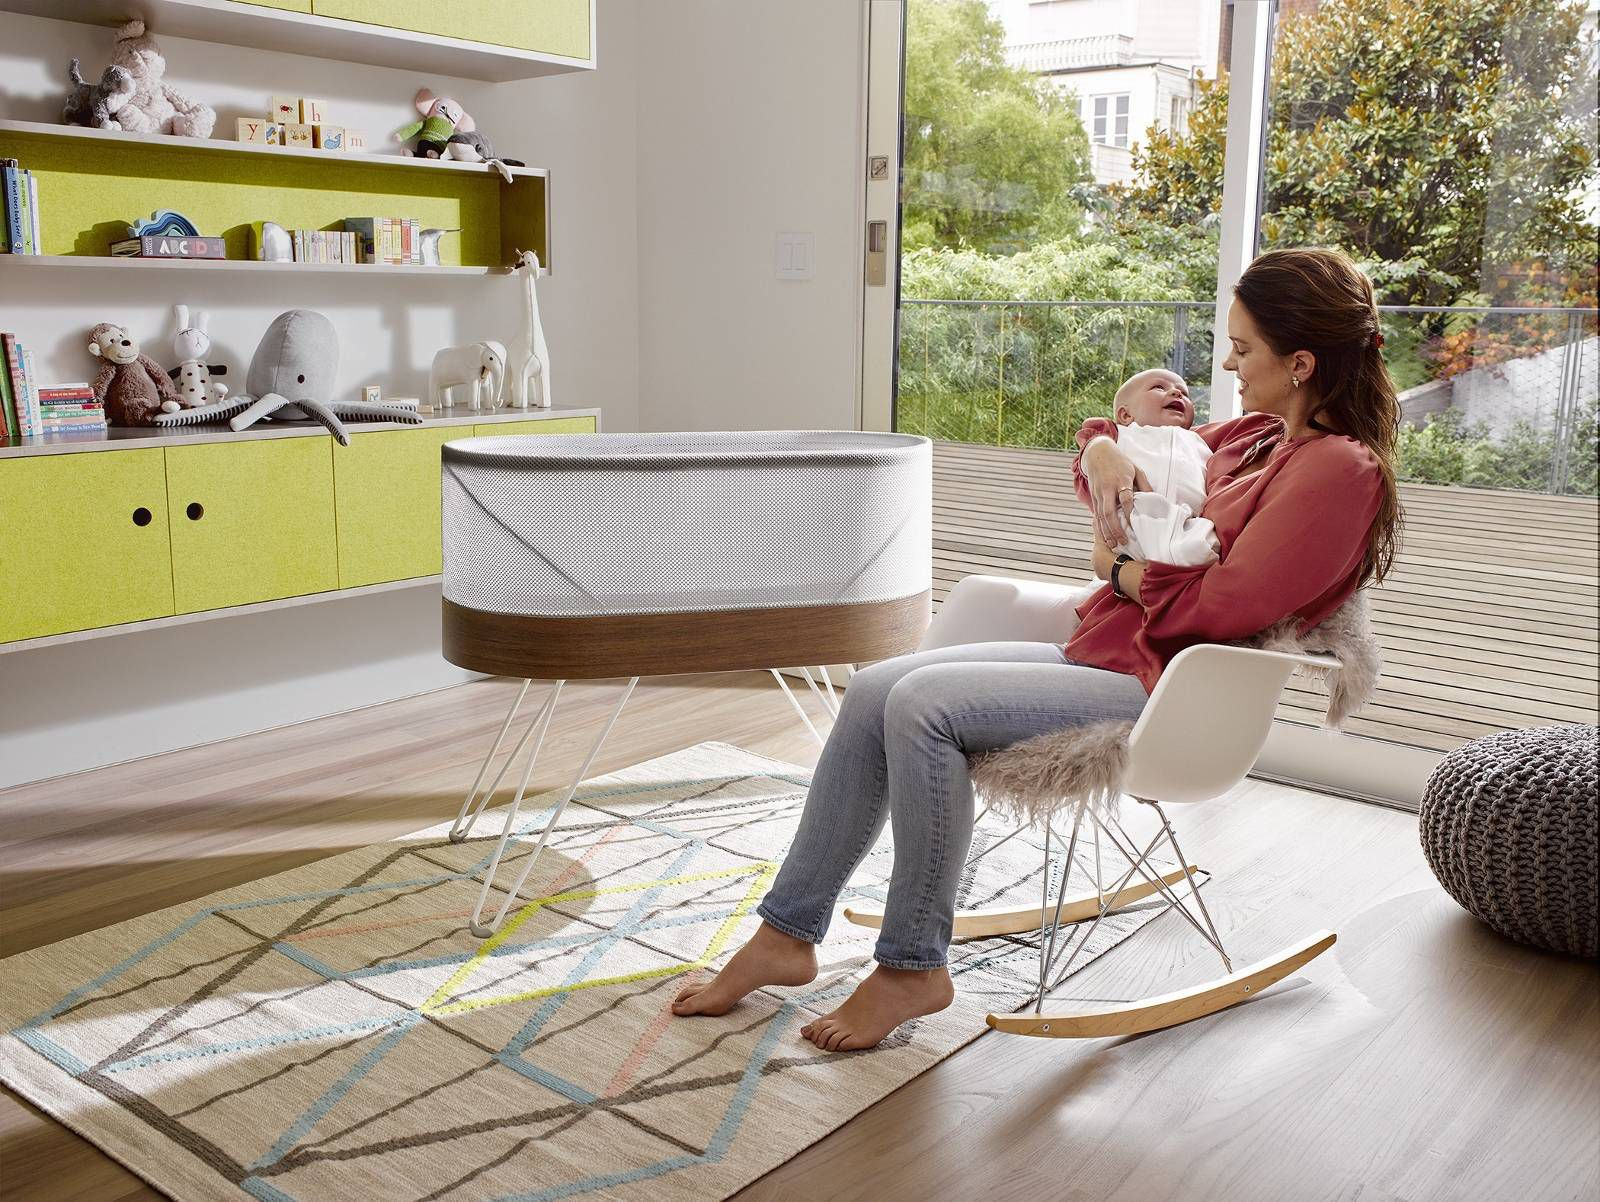 The Wired Baby Parenting In The Age Of Smart Cribs